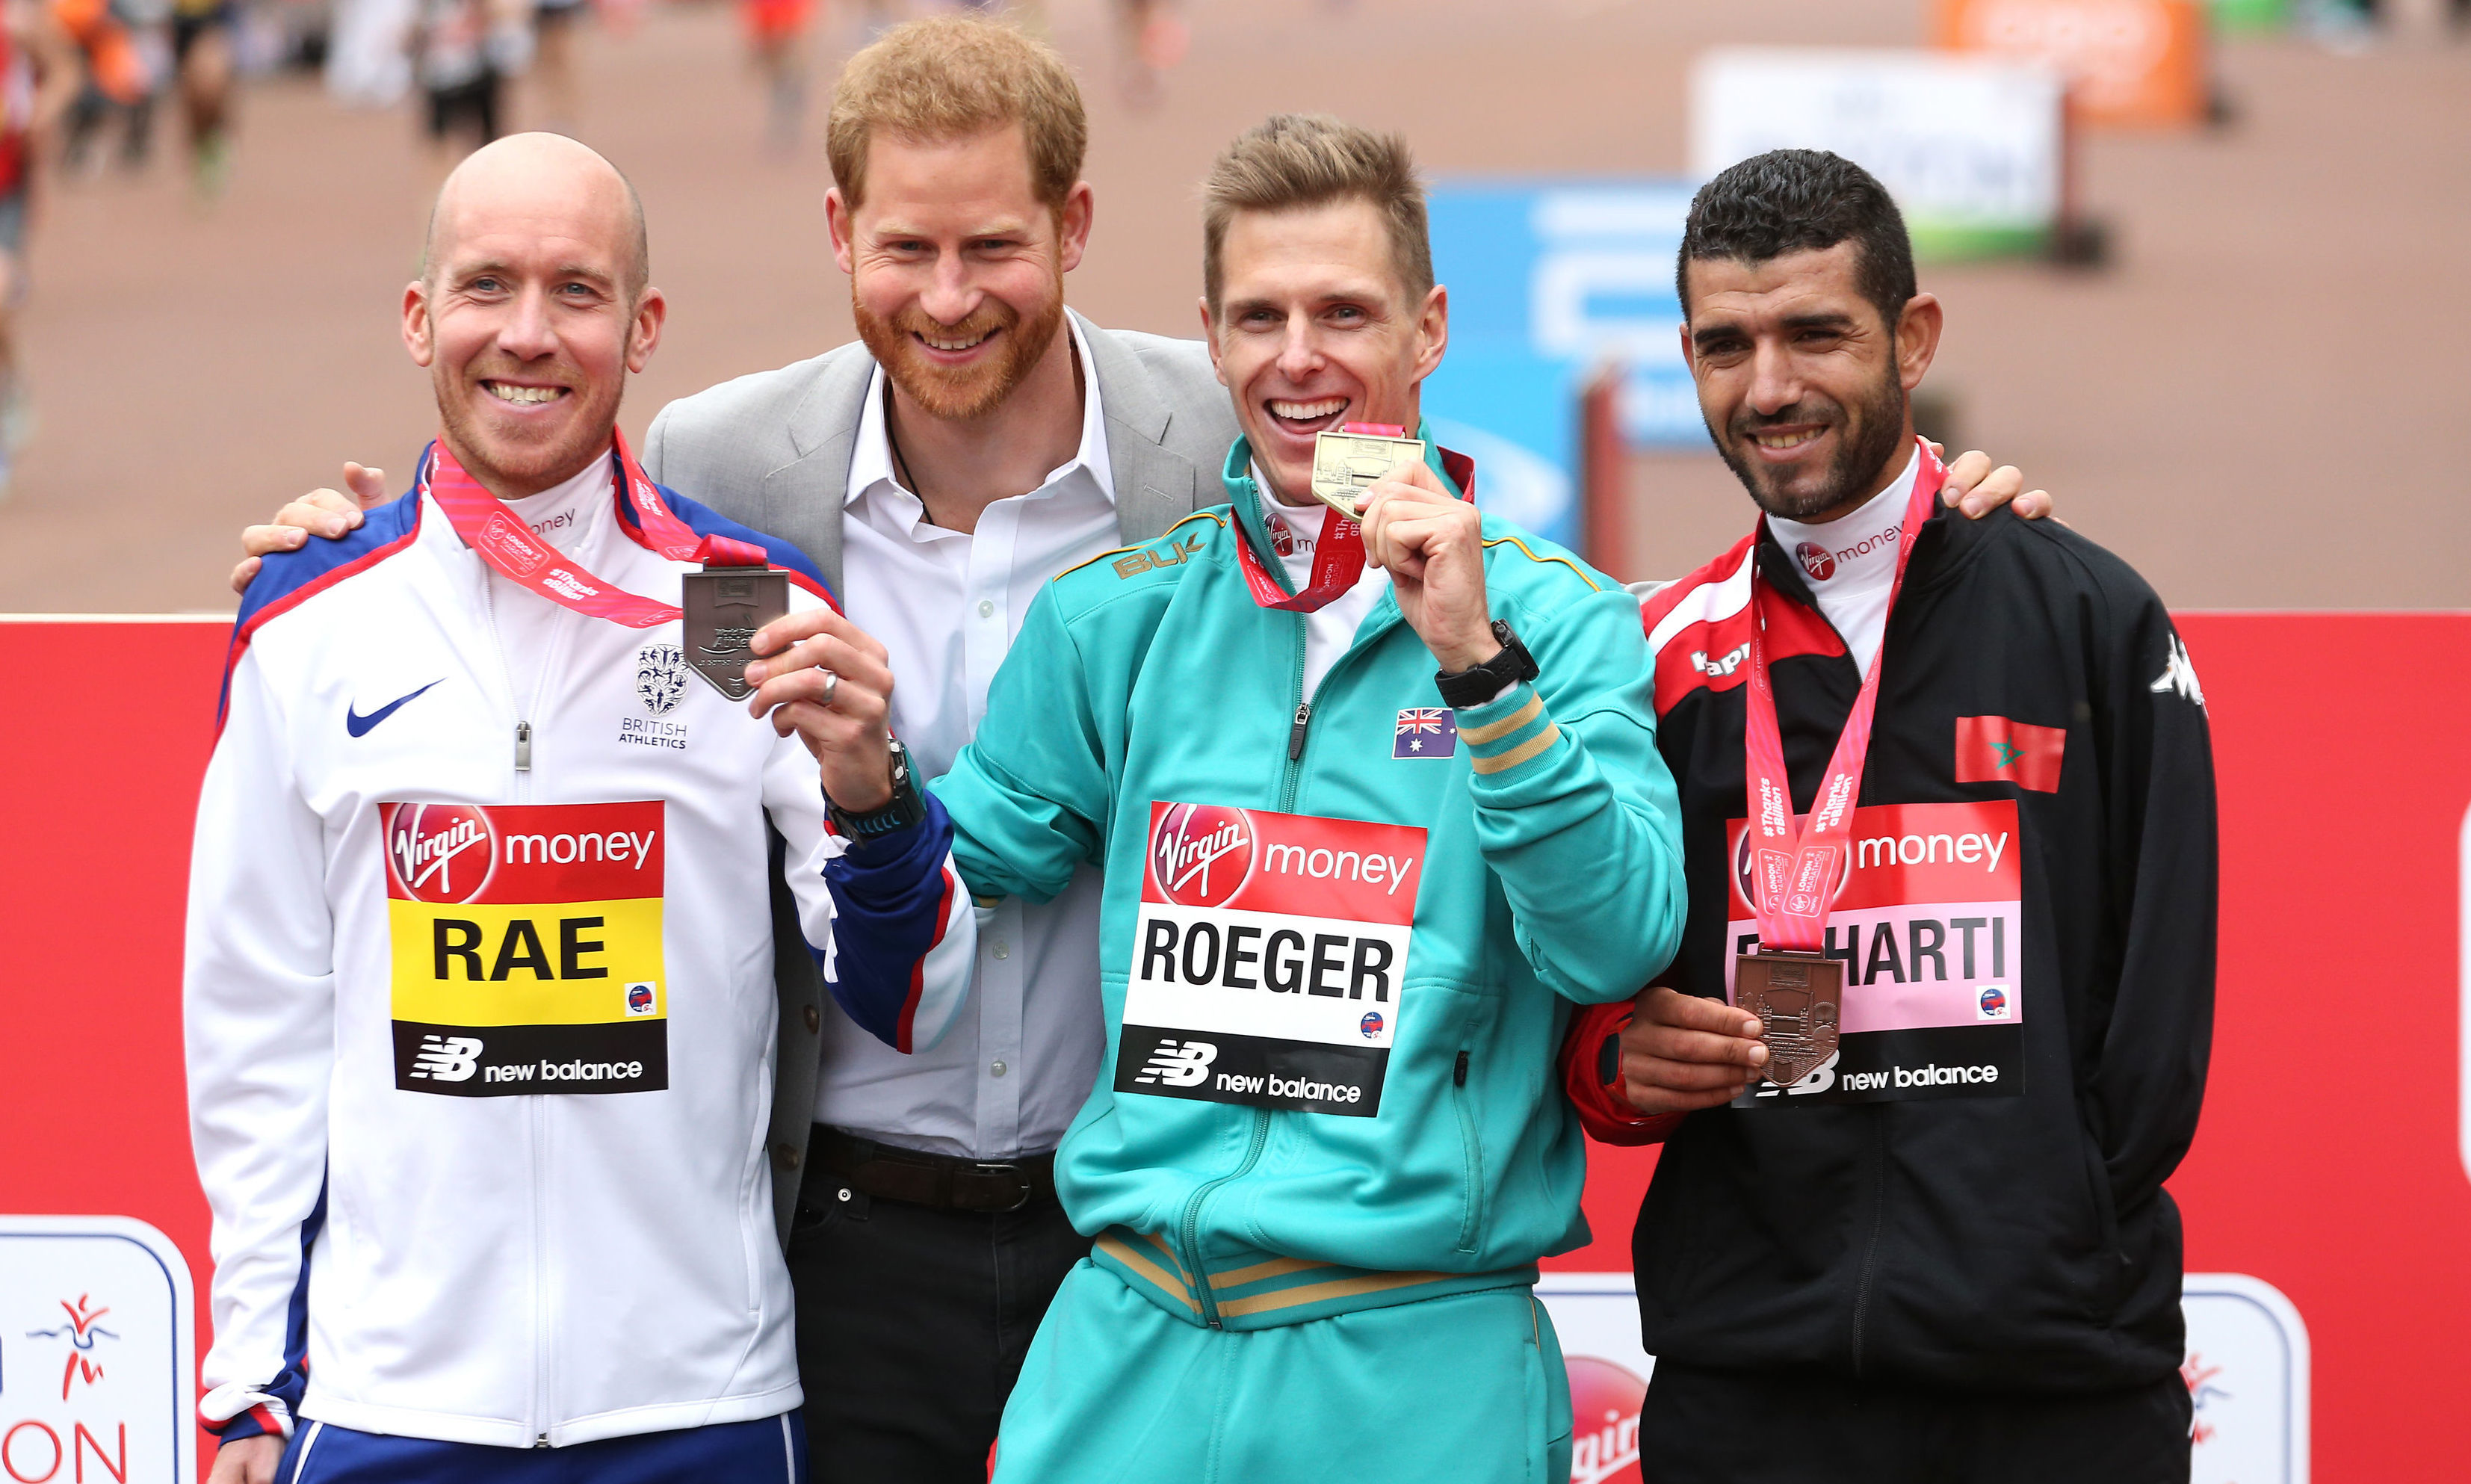 The Duke of Sussex poses for a picture with Great Britain's Derek Rae (left), Australia's Michael Roeger and El Harti (right) after receiving their medals in the WPA Marathon during the 2019 Virgin Money London Marathon.